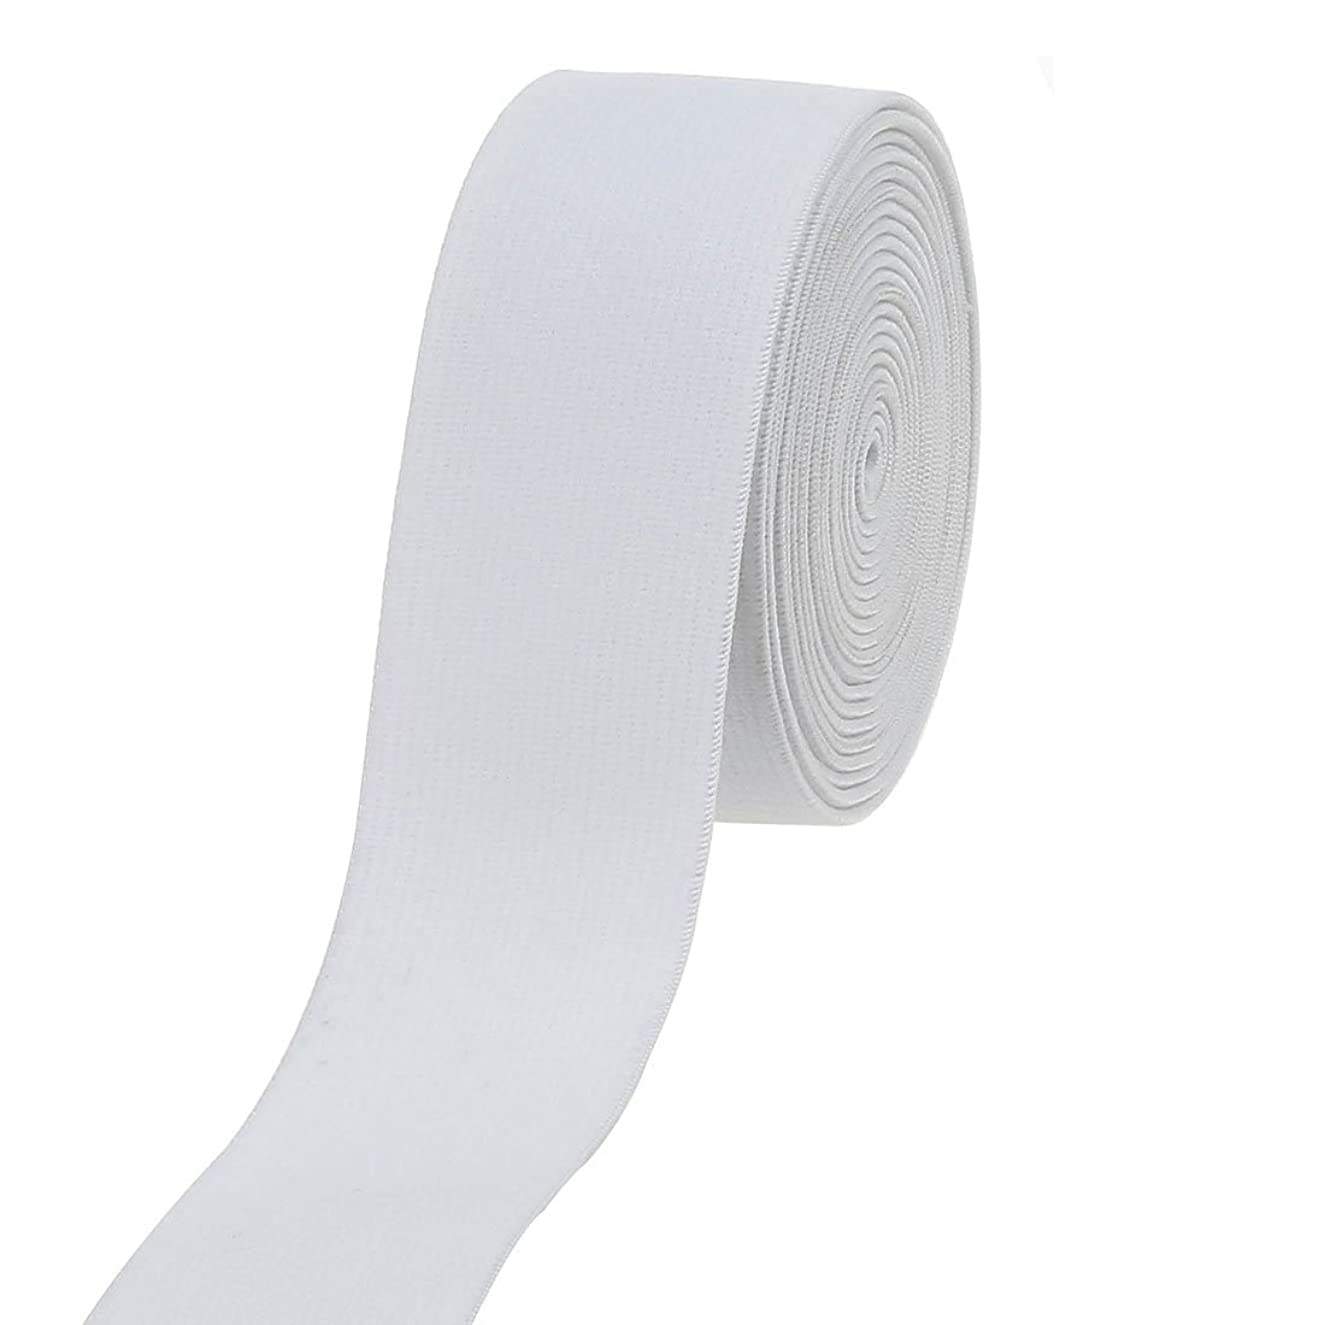 Cotowin 1.5-inch White Plush Elastic,Soft Comfortable Sewing Elastic - 3 Yards